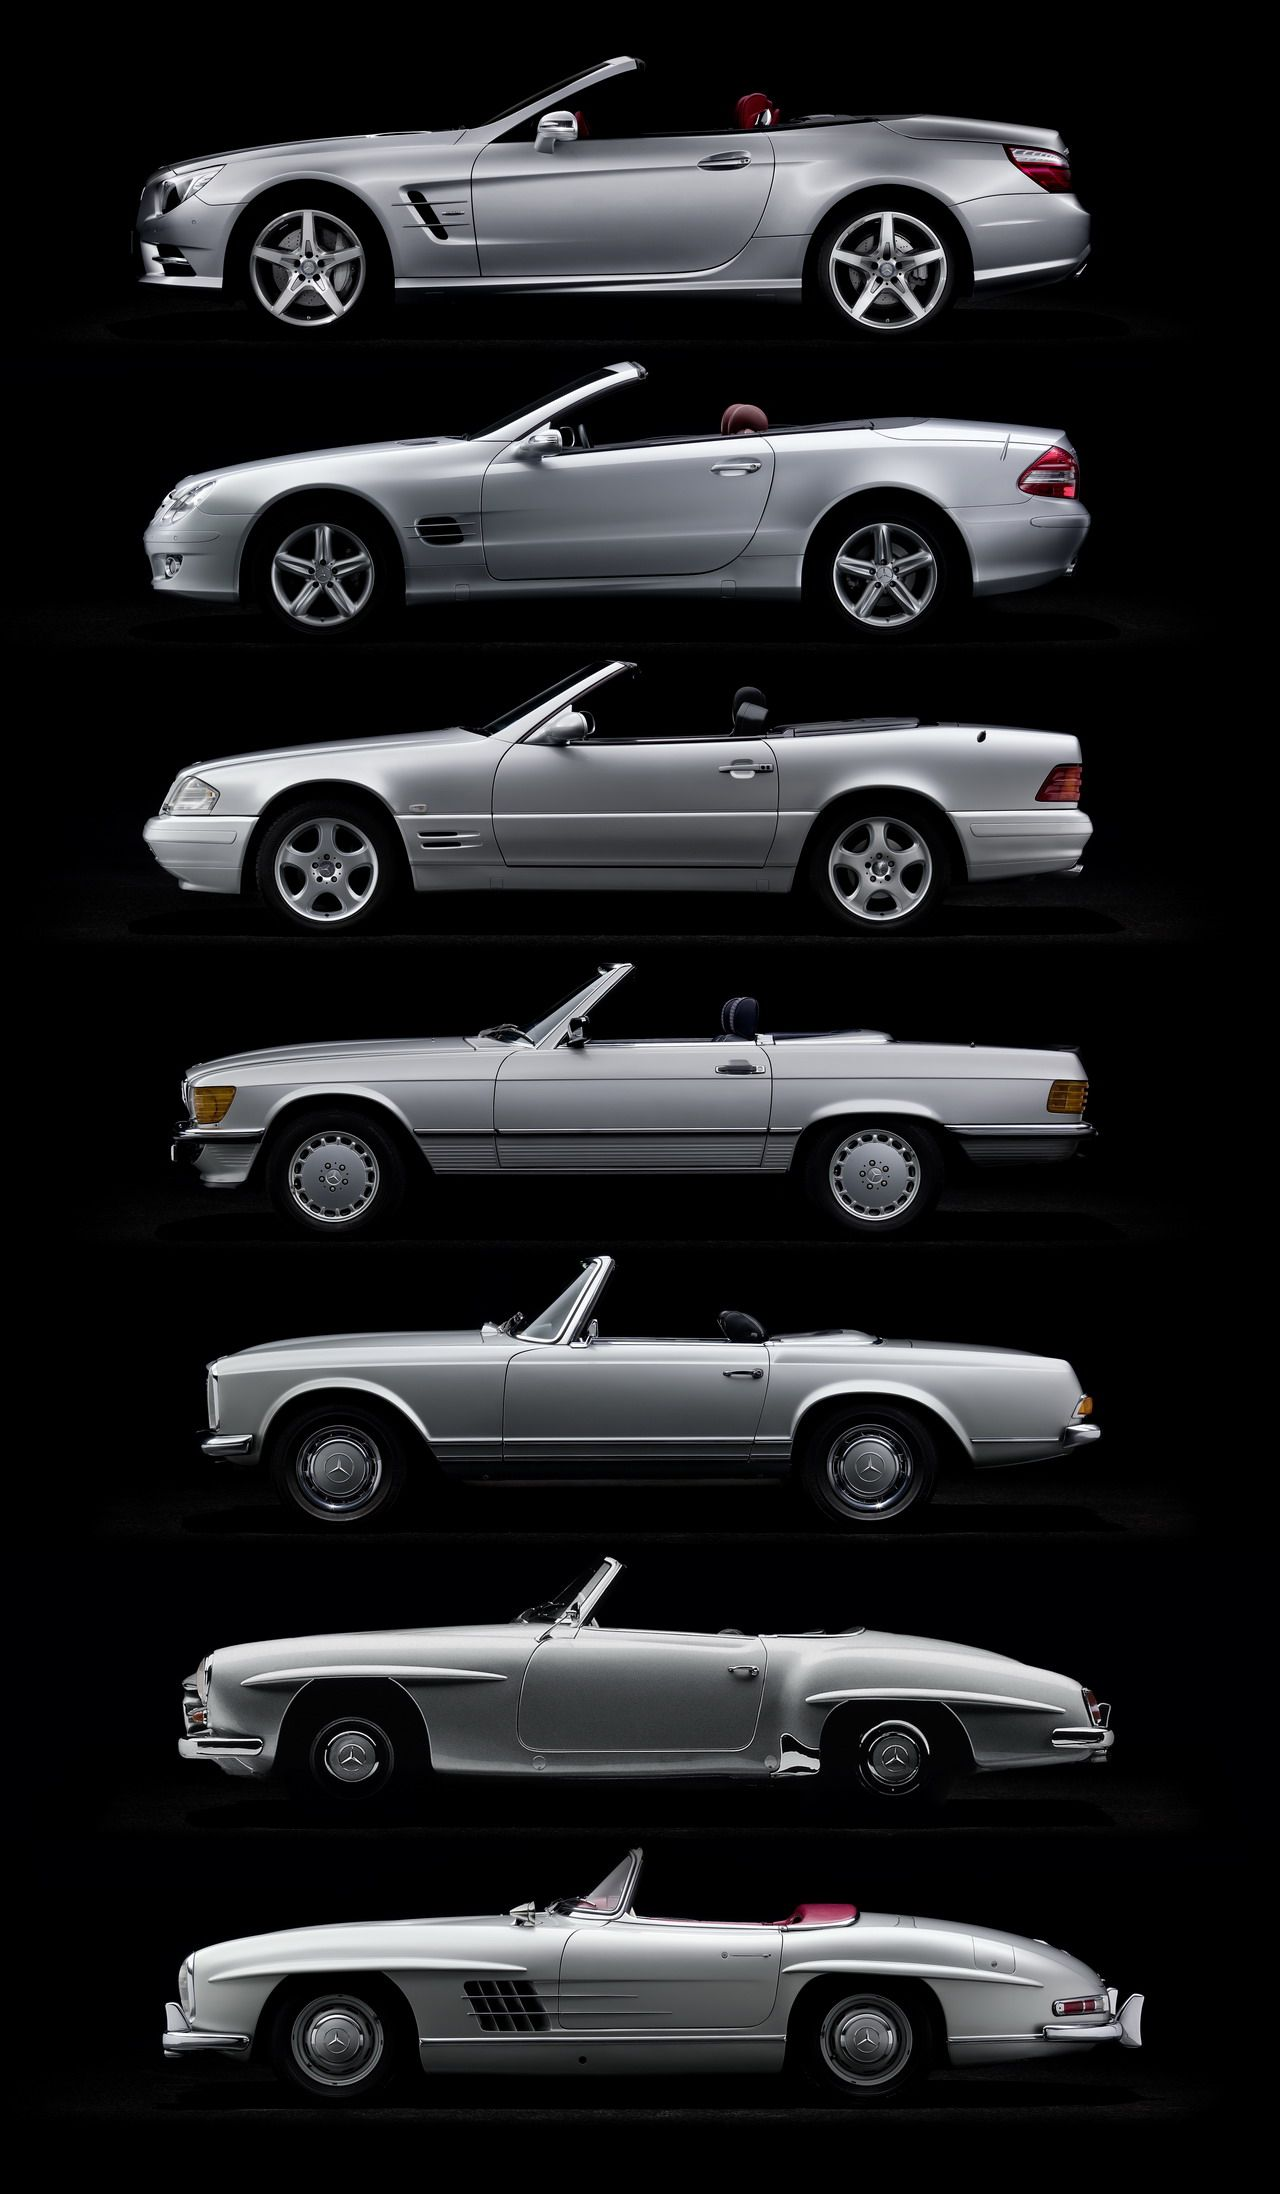 Mercedes Benz Blog The new Mercedes Benz SL 60 years of SL history